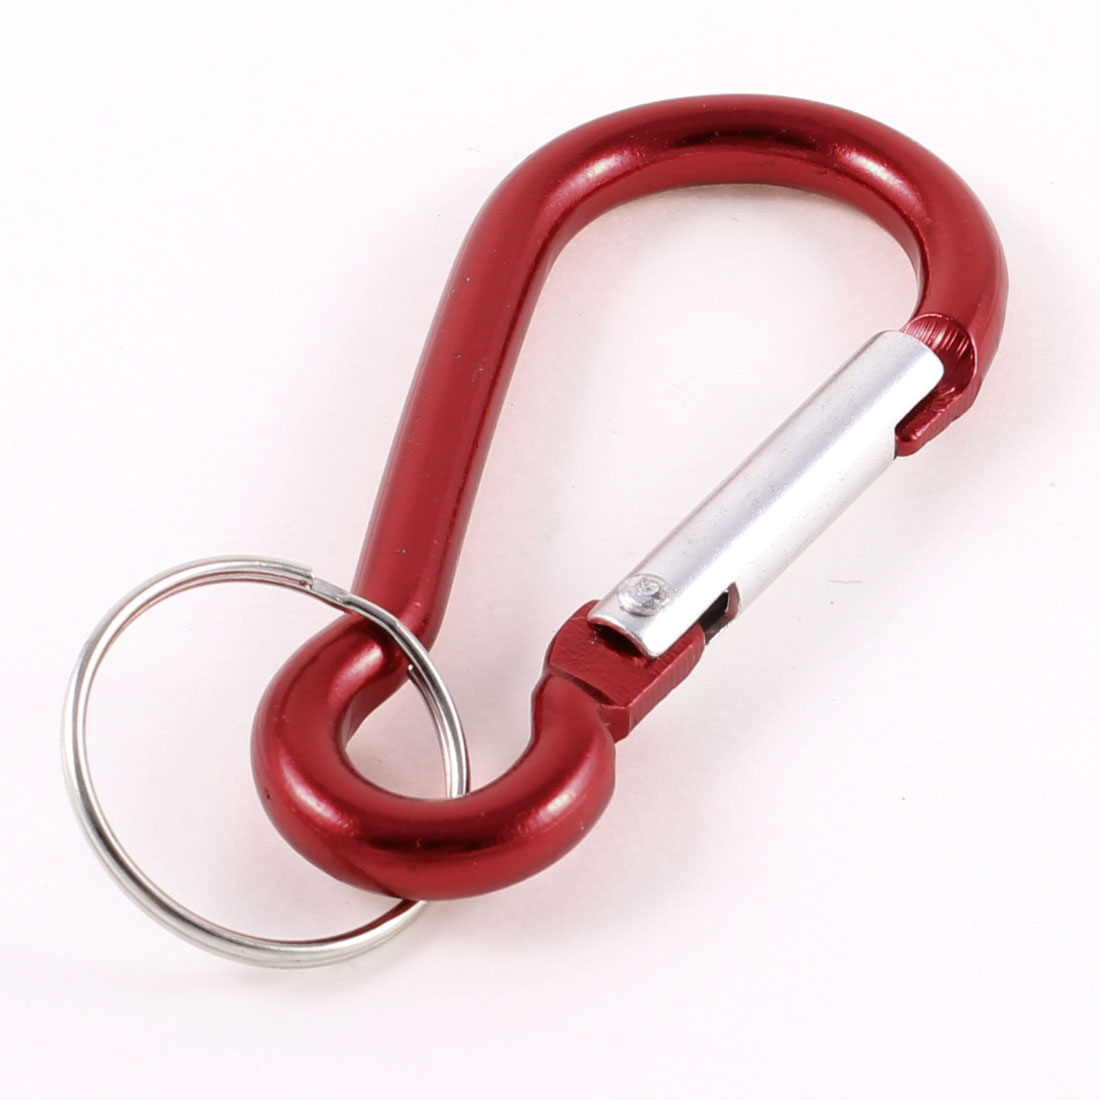 "2.8"" Long Burgundy Aluminum Alloy Spring Clip Carabiner Hook Keychain"